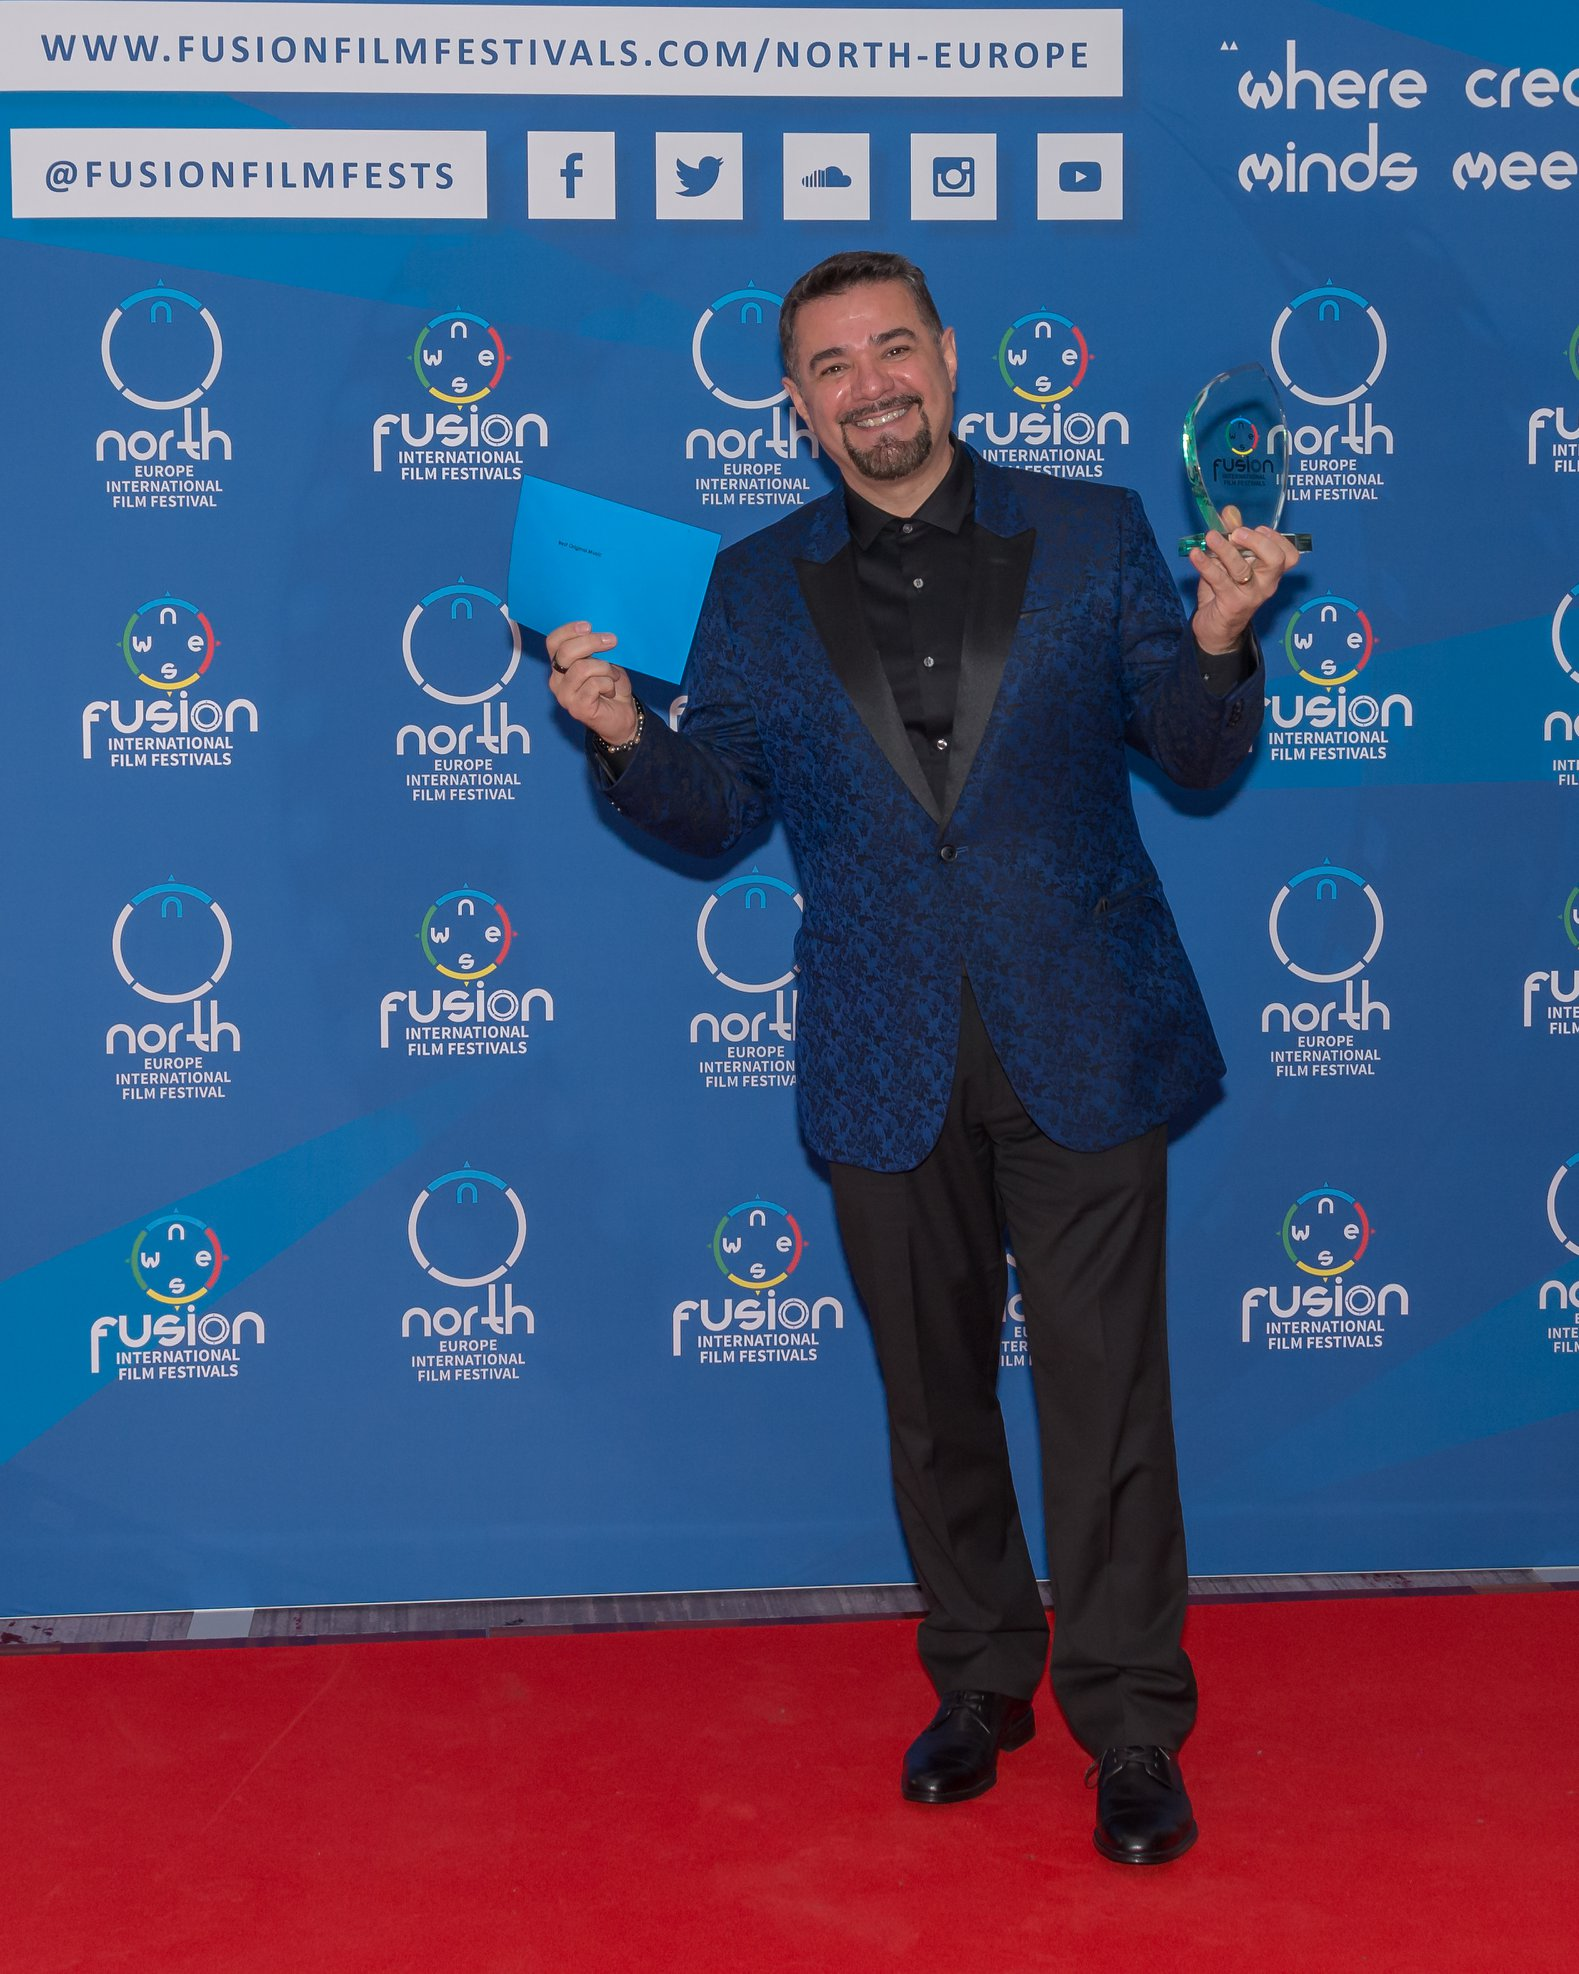 Eddie Torres attending the North Europe Fusion International Film Fest in February 2019 |  Courtesy of Stuart Watson/Fusion Film Festival